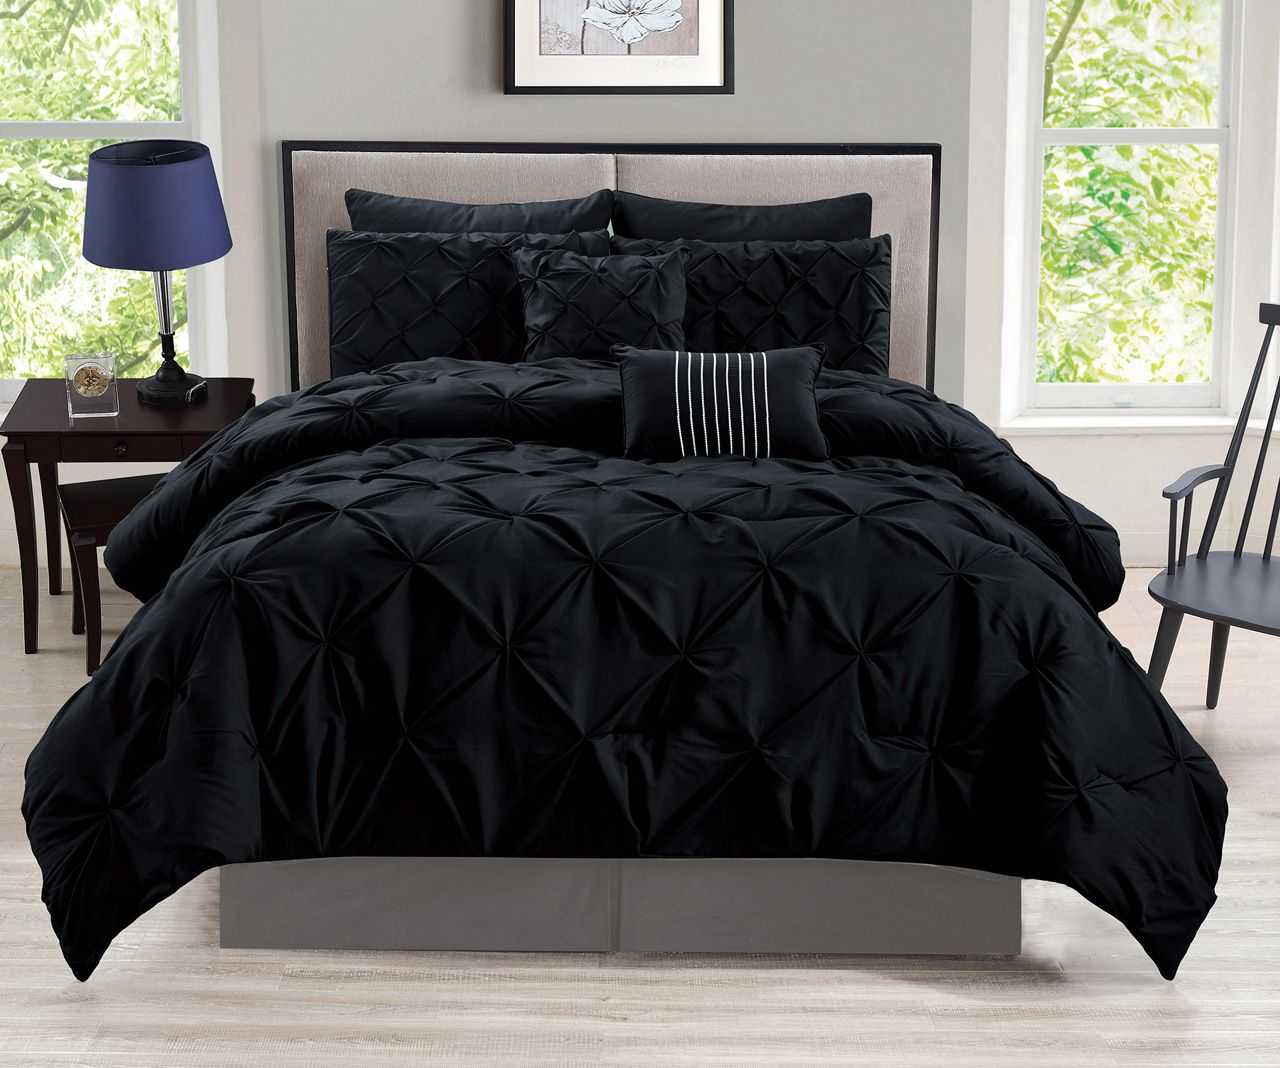 8 Piece Rochelle Pinched Pleat Black Comforter Set Black Comforter Sets Black Bed Set Black Comforter